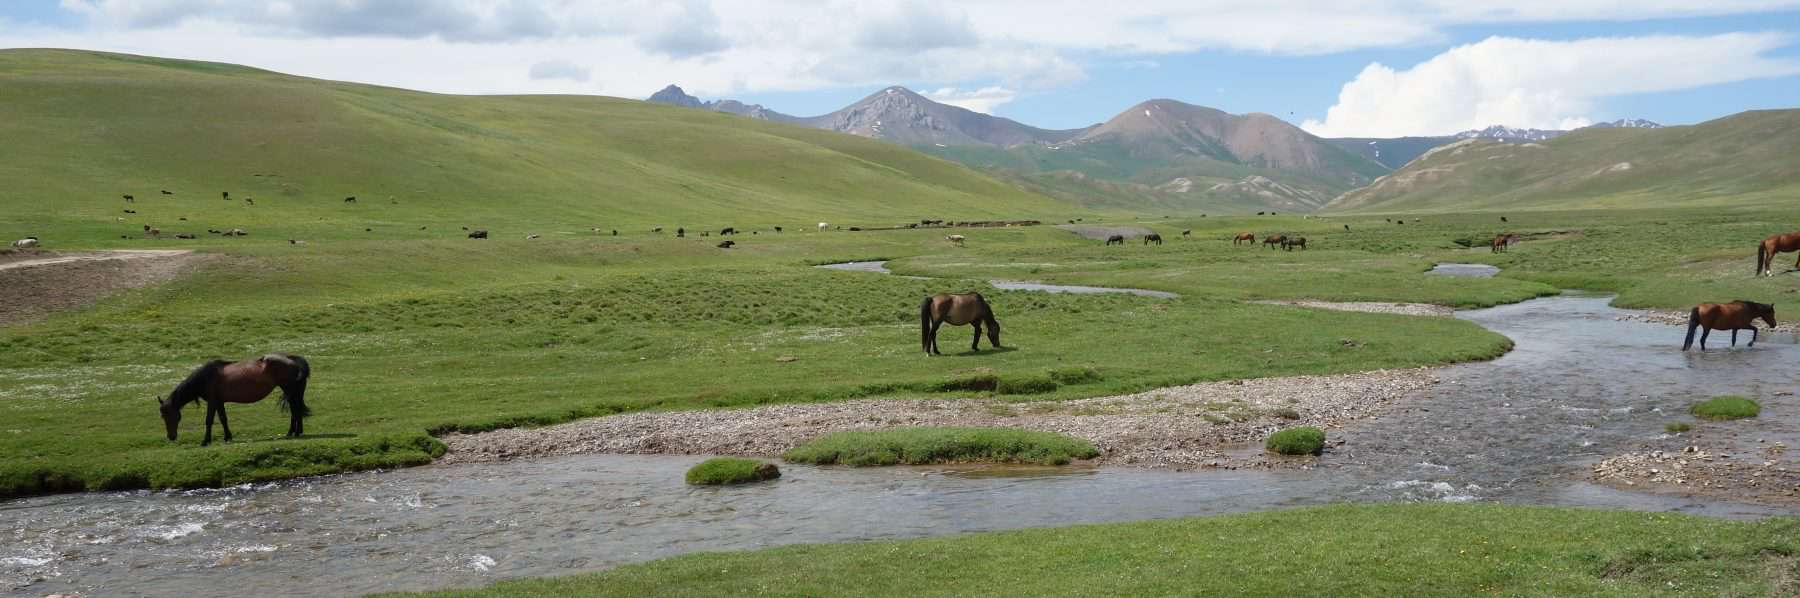 Lake Song-Kul, Kyrgyzstan